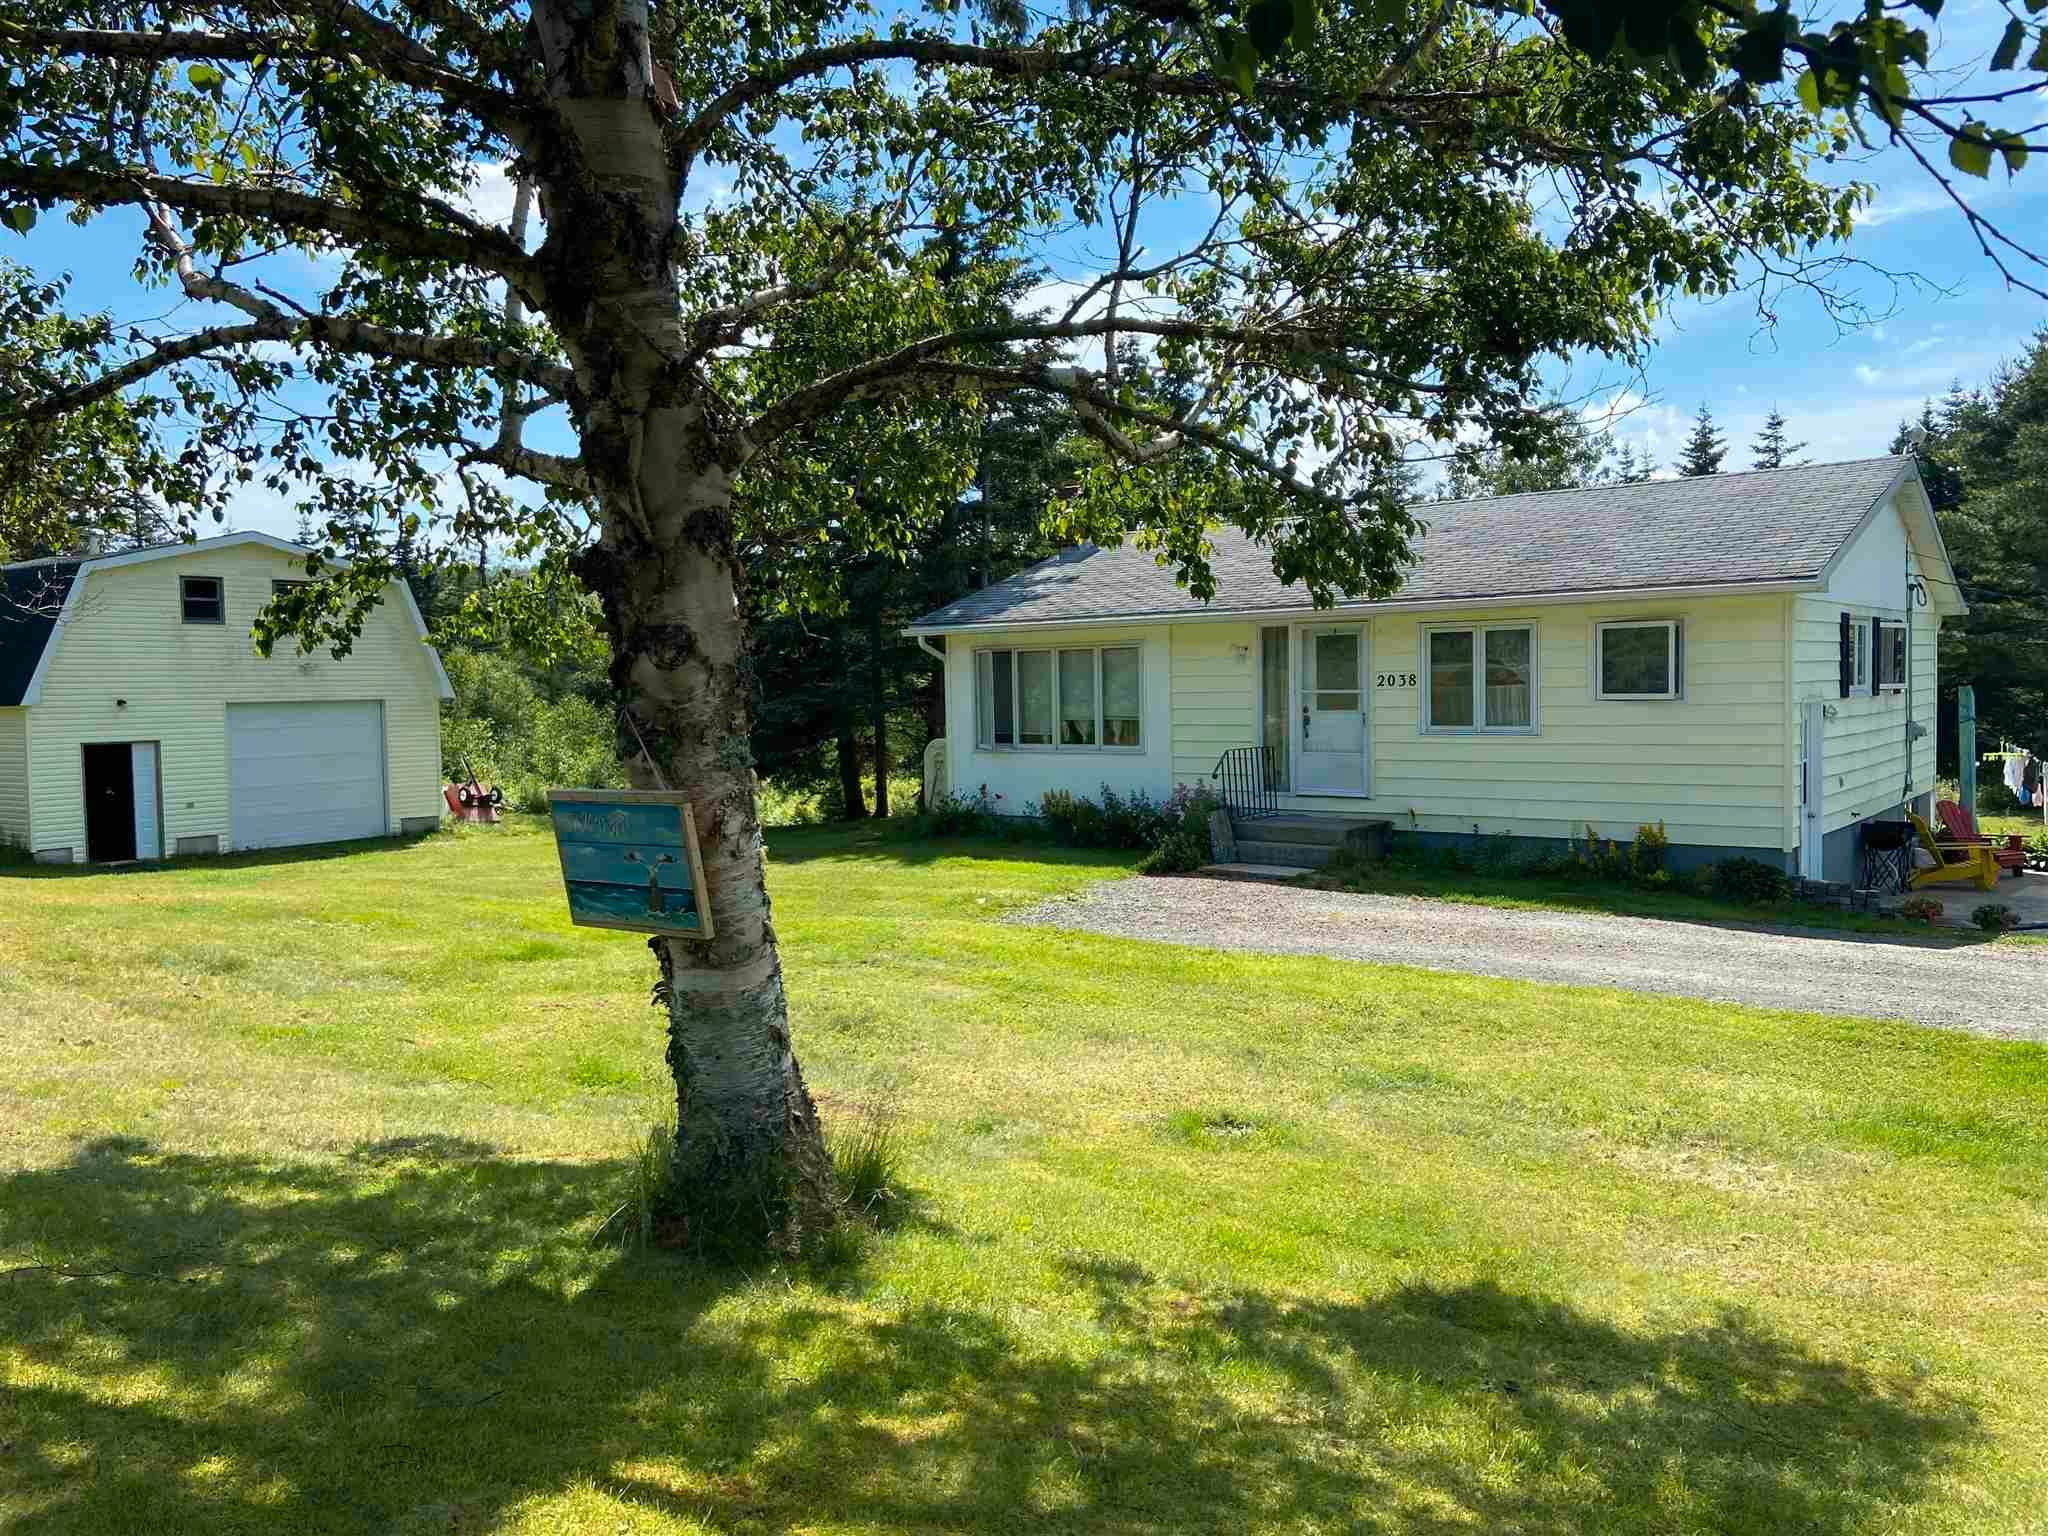 Main Photo: 2038 211 Highway in Indian Harbour Lake: 303-Guysborough County Residential for sale (Highland Region)  : MLS®# 202116449